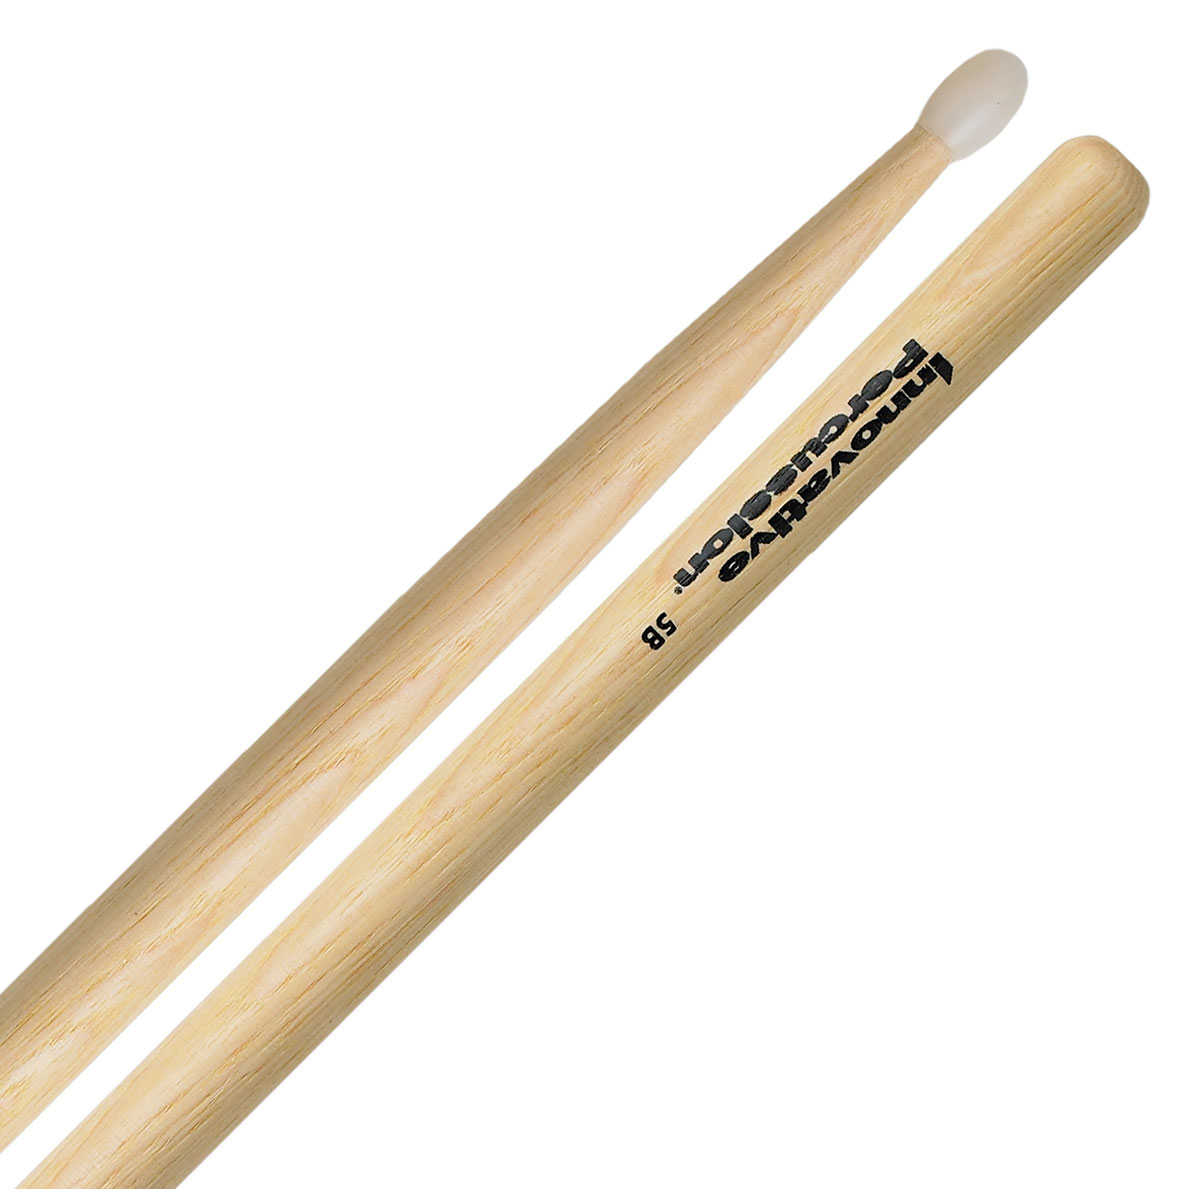 Innovative Percussion 5B Nylon Tip Drumsticks